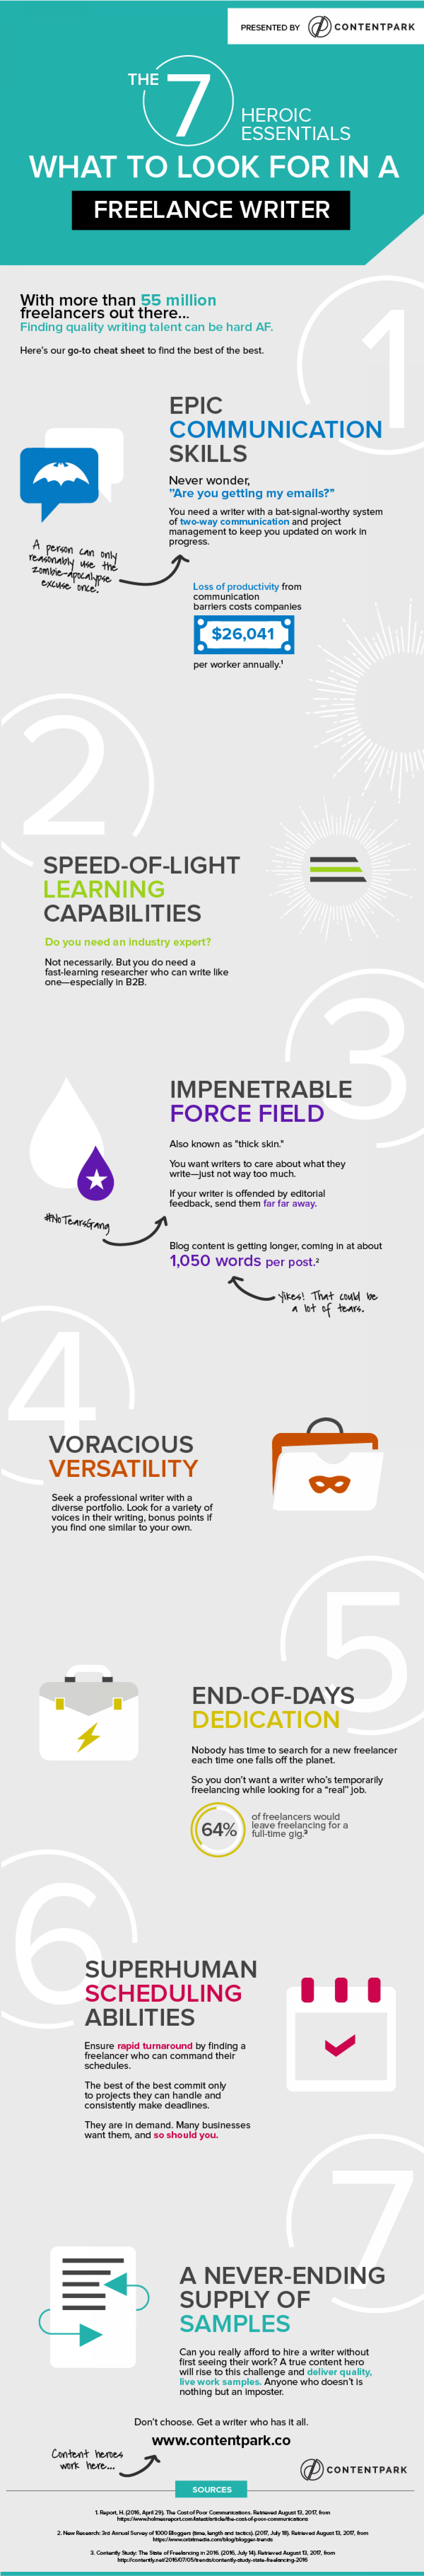 7 Heroic Essentials: What to Look for in Freelance Writers Infographic